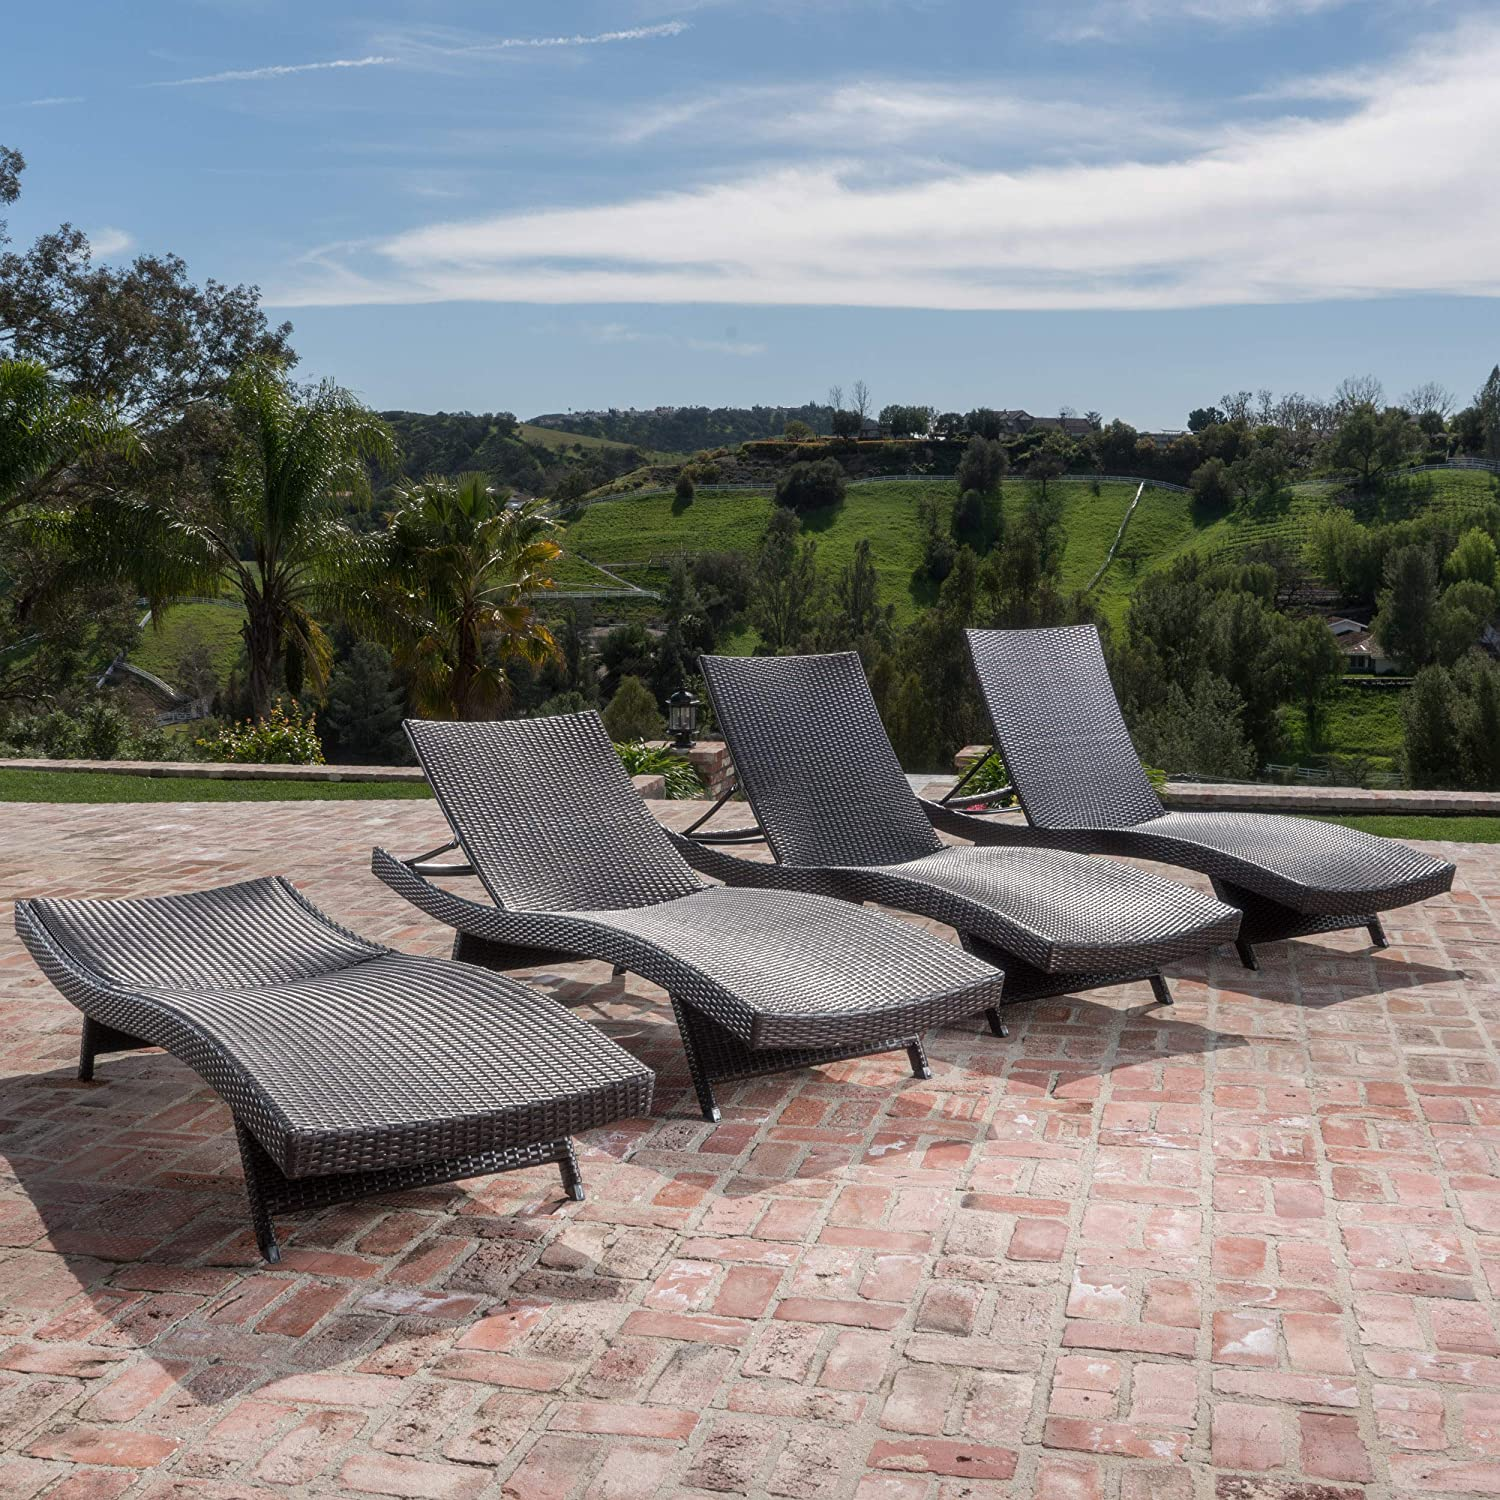 Christopher Knight Home Thira Outdoor Wicker Chaise Lounges with Aluminum Frame Mix Mocha 4-Pcs Set